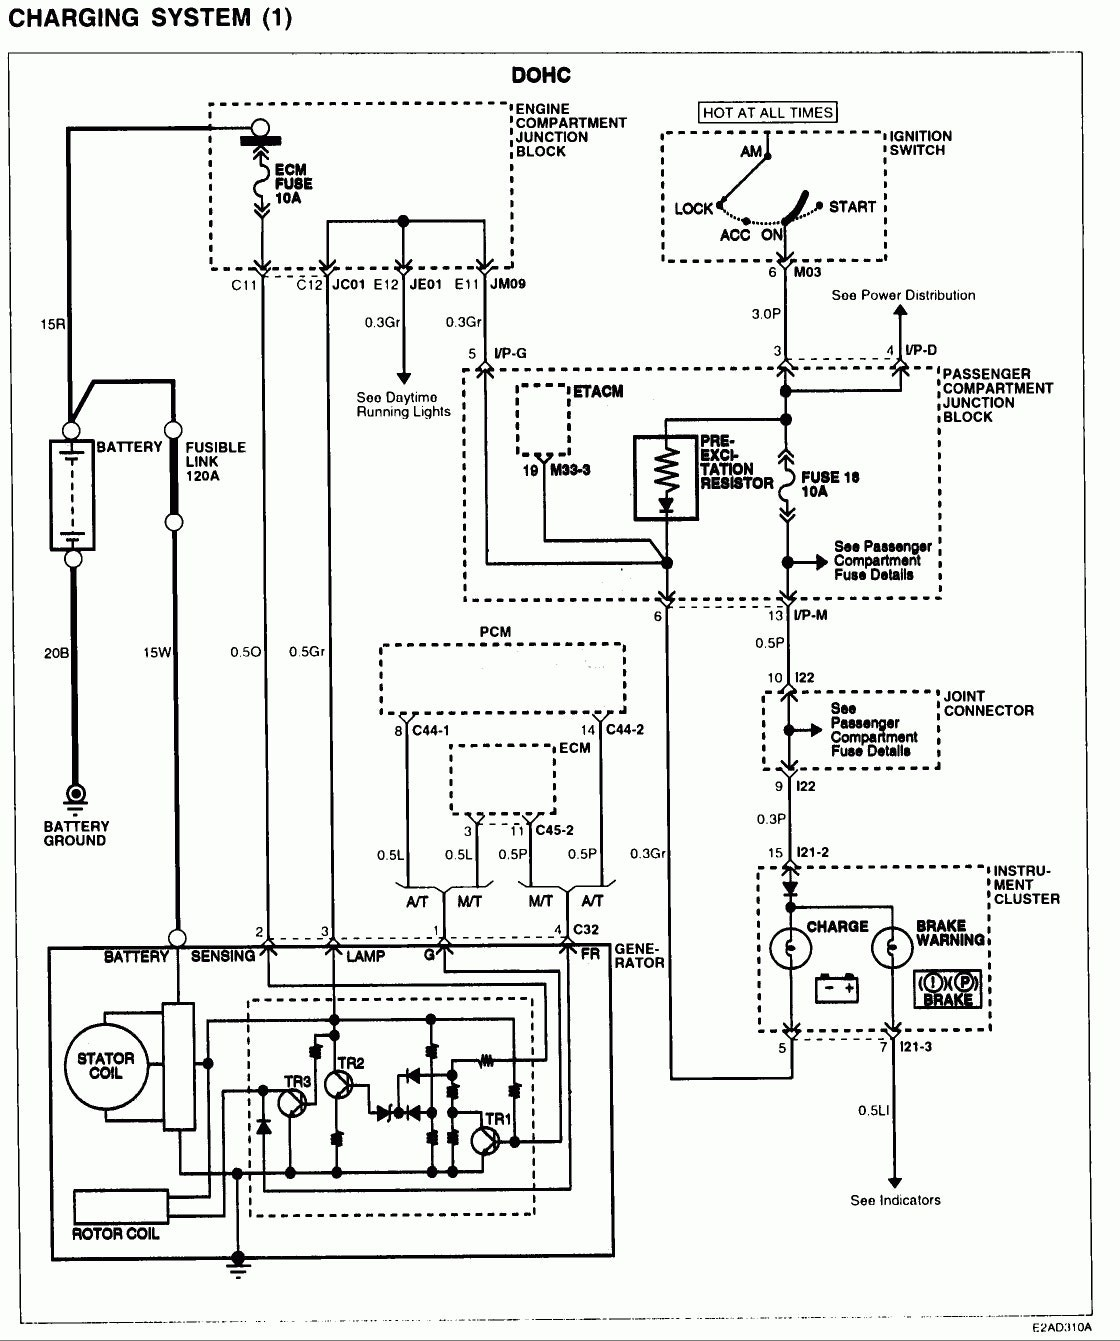 Circuit Diagram 2 0